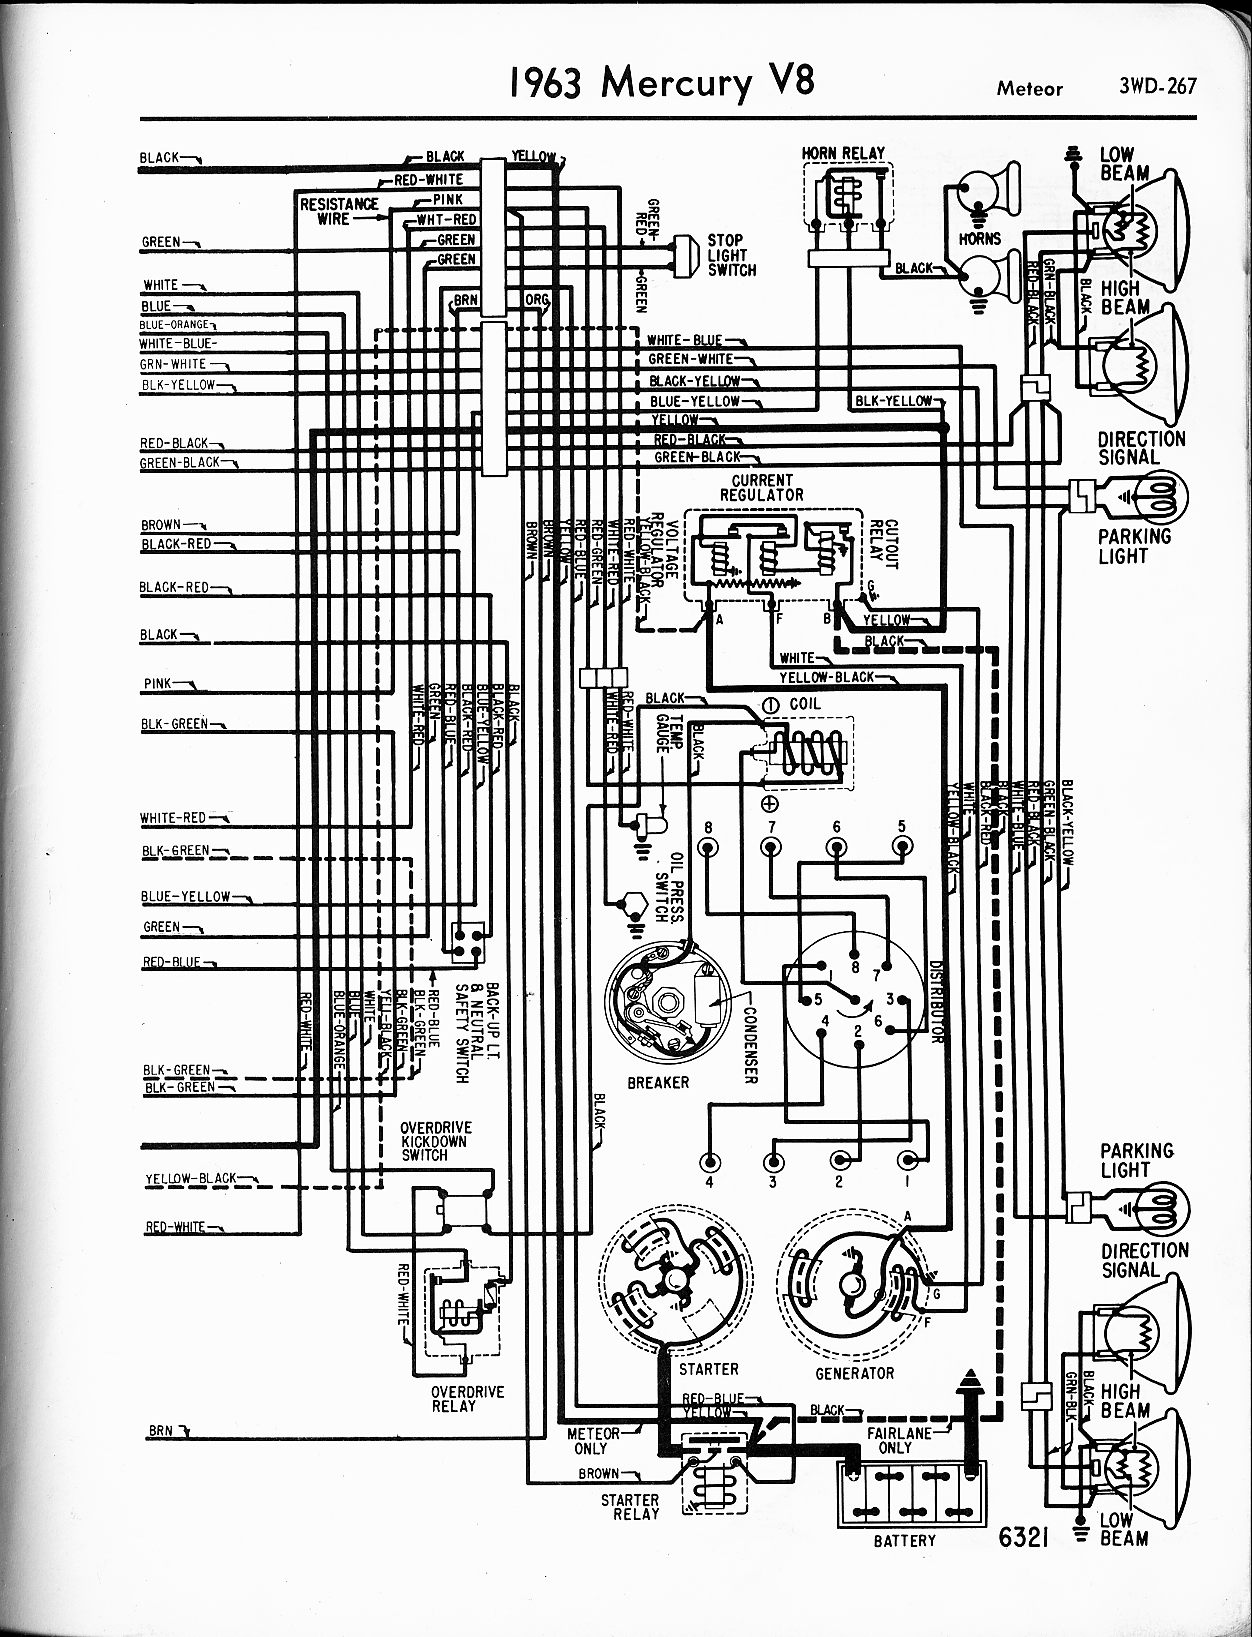 1955 mercury monterey wiring harness  1955  free engine image for user manual download